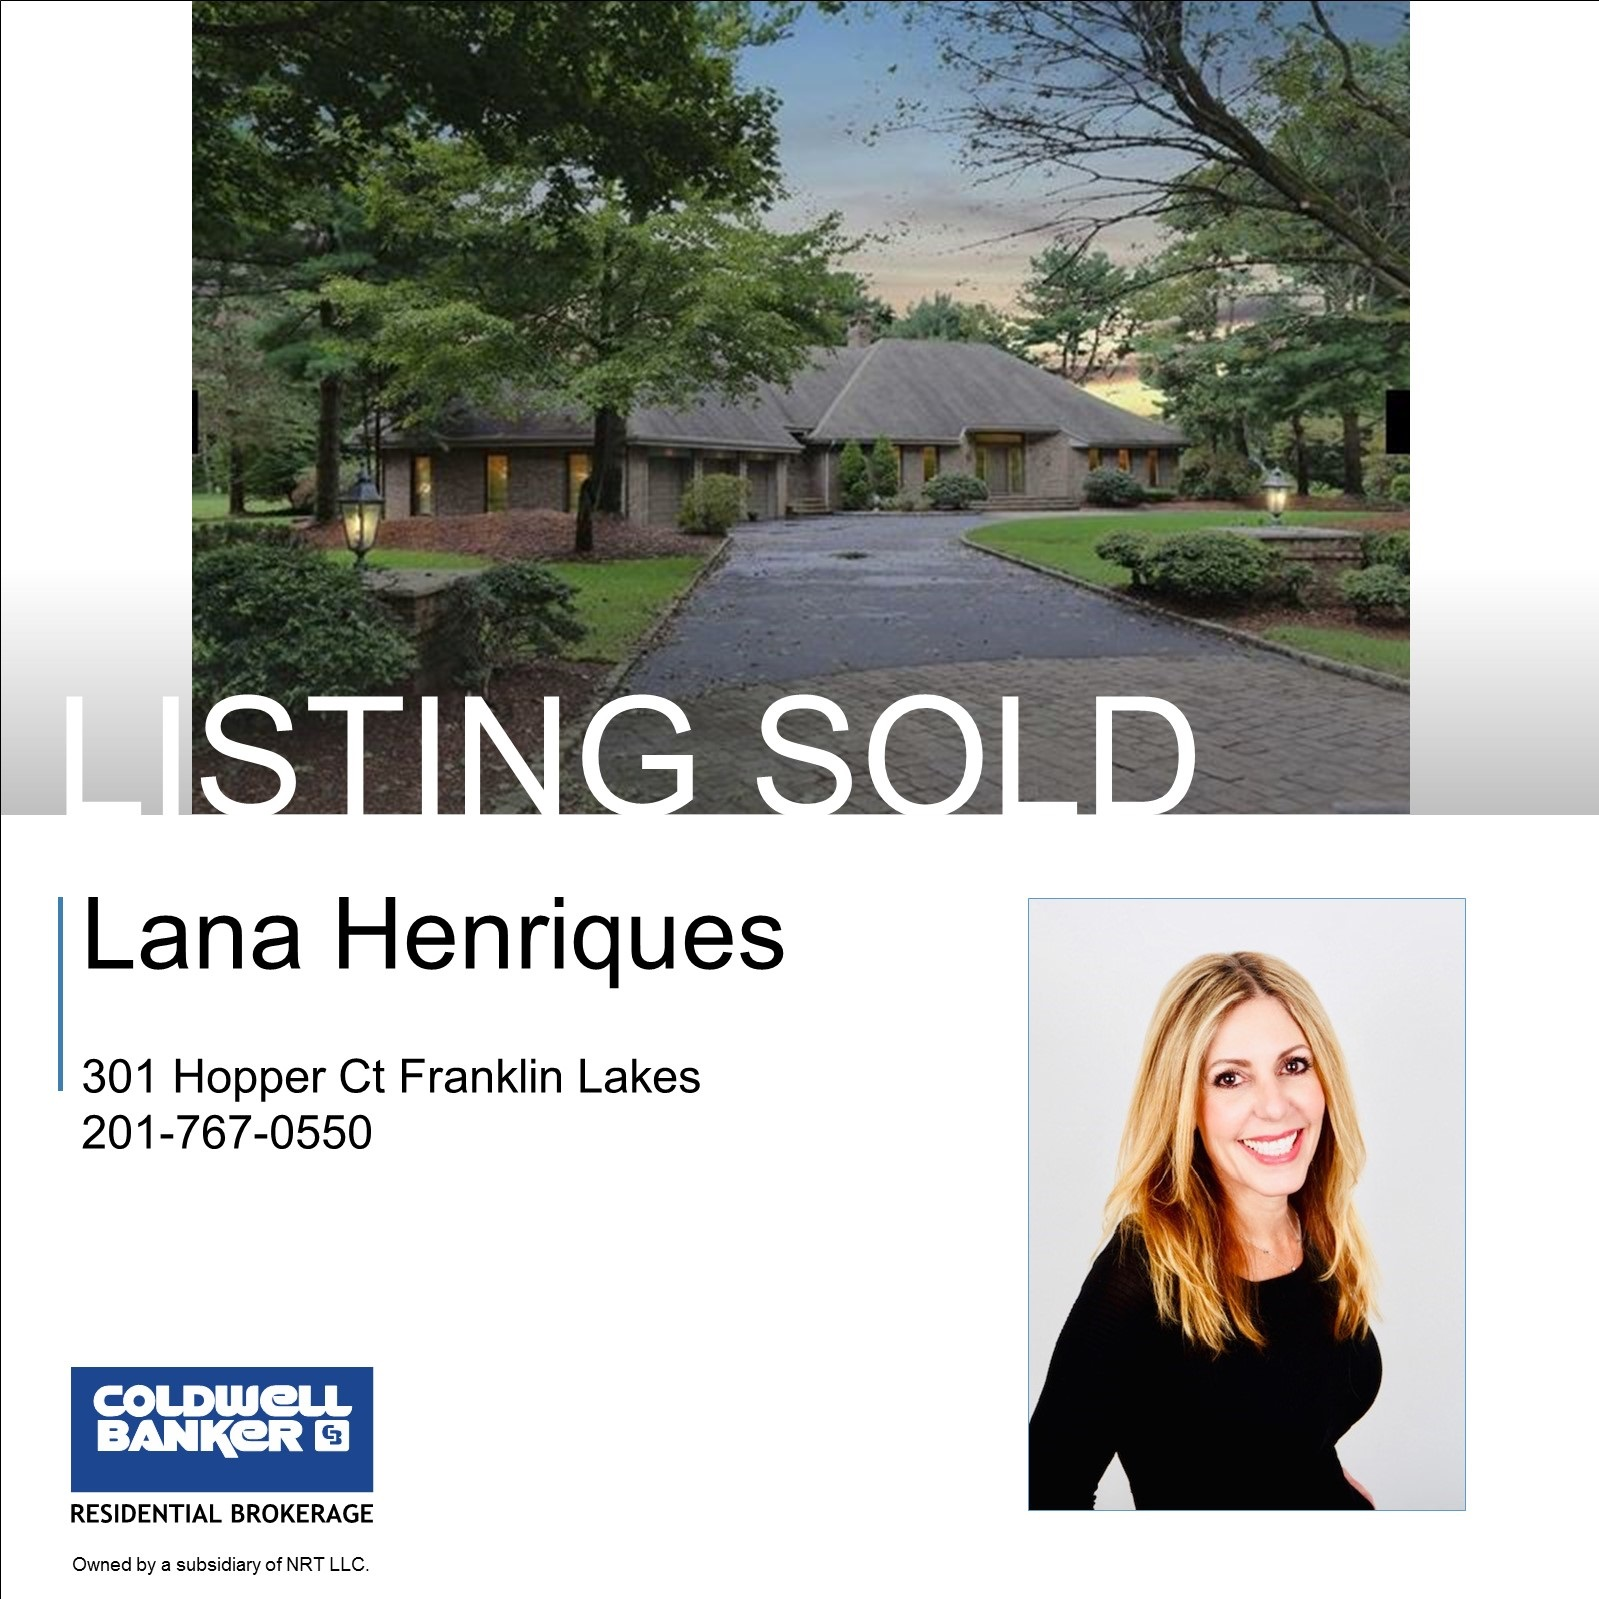 lanas listed and sold by Lana